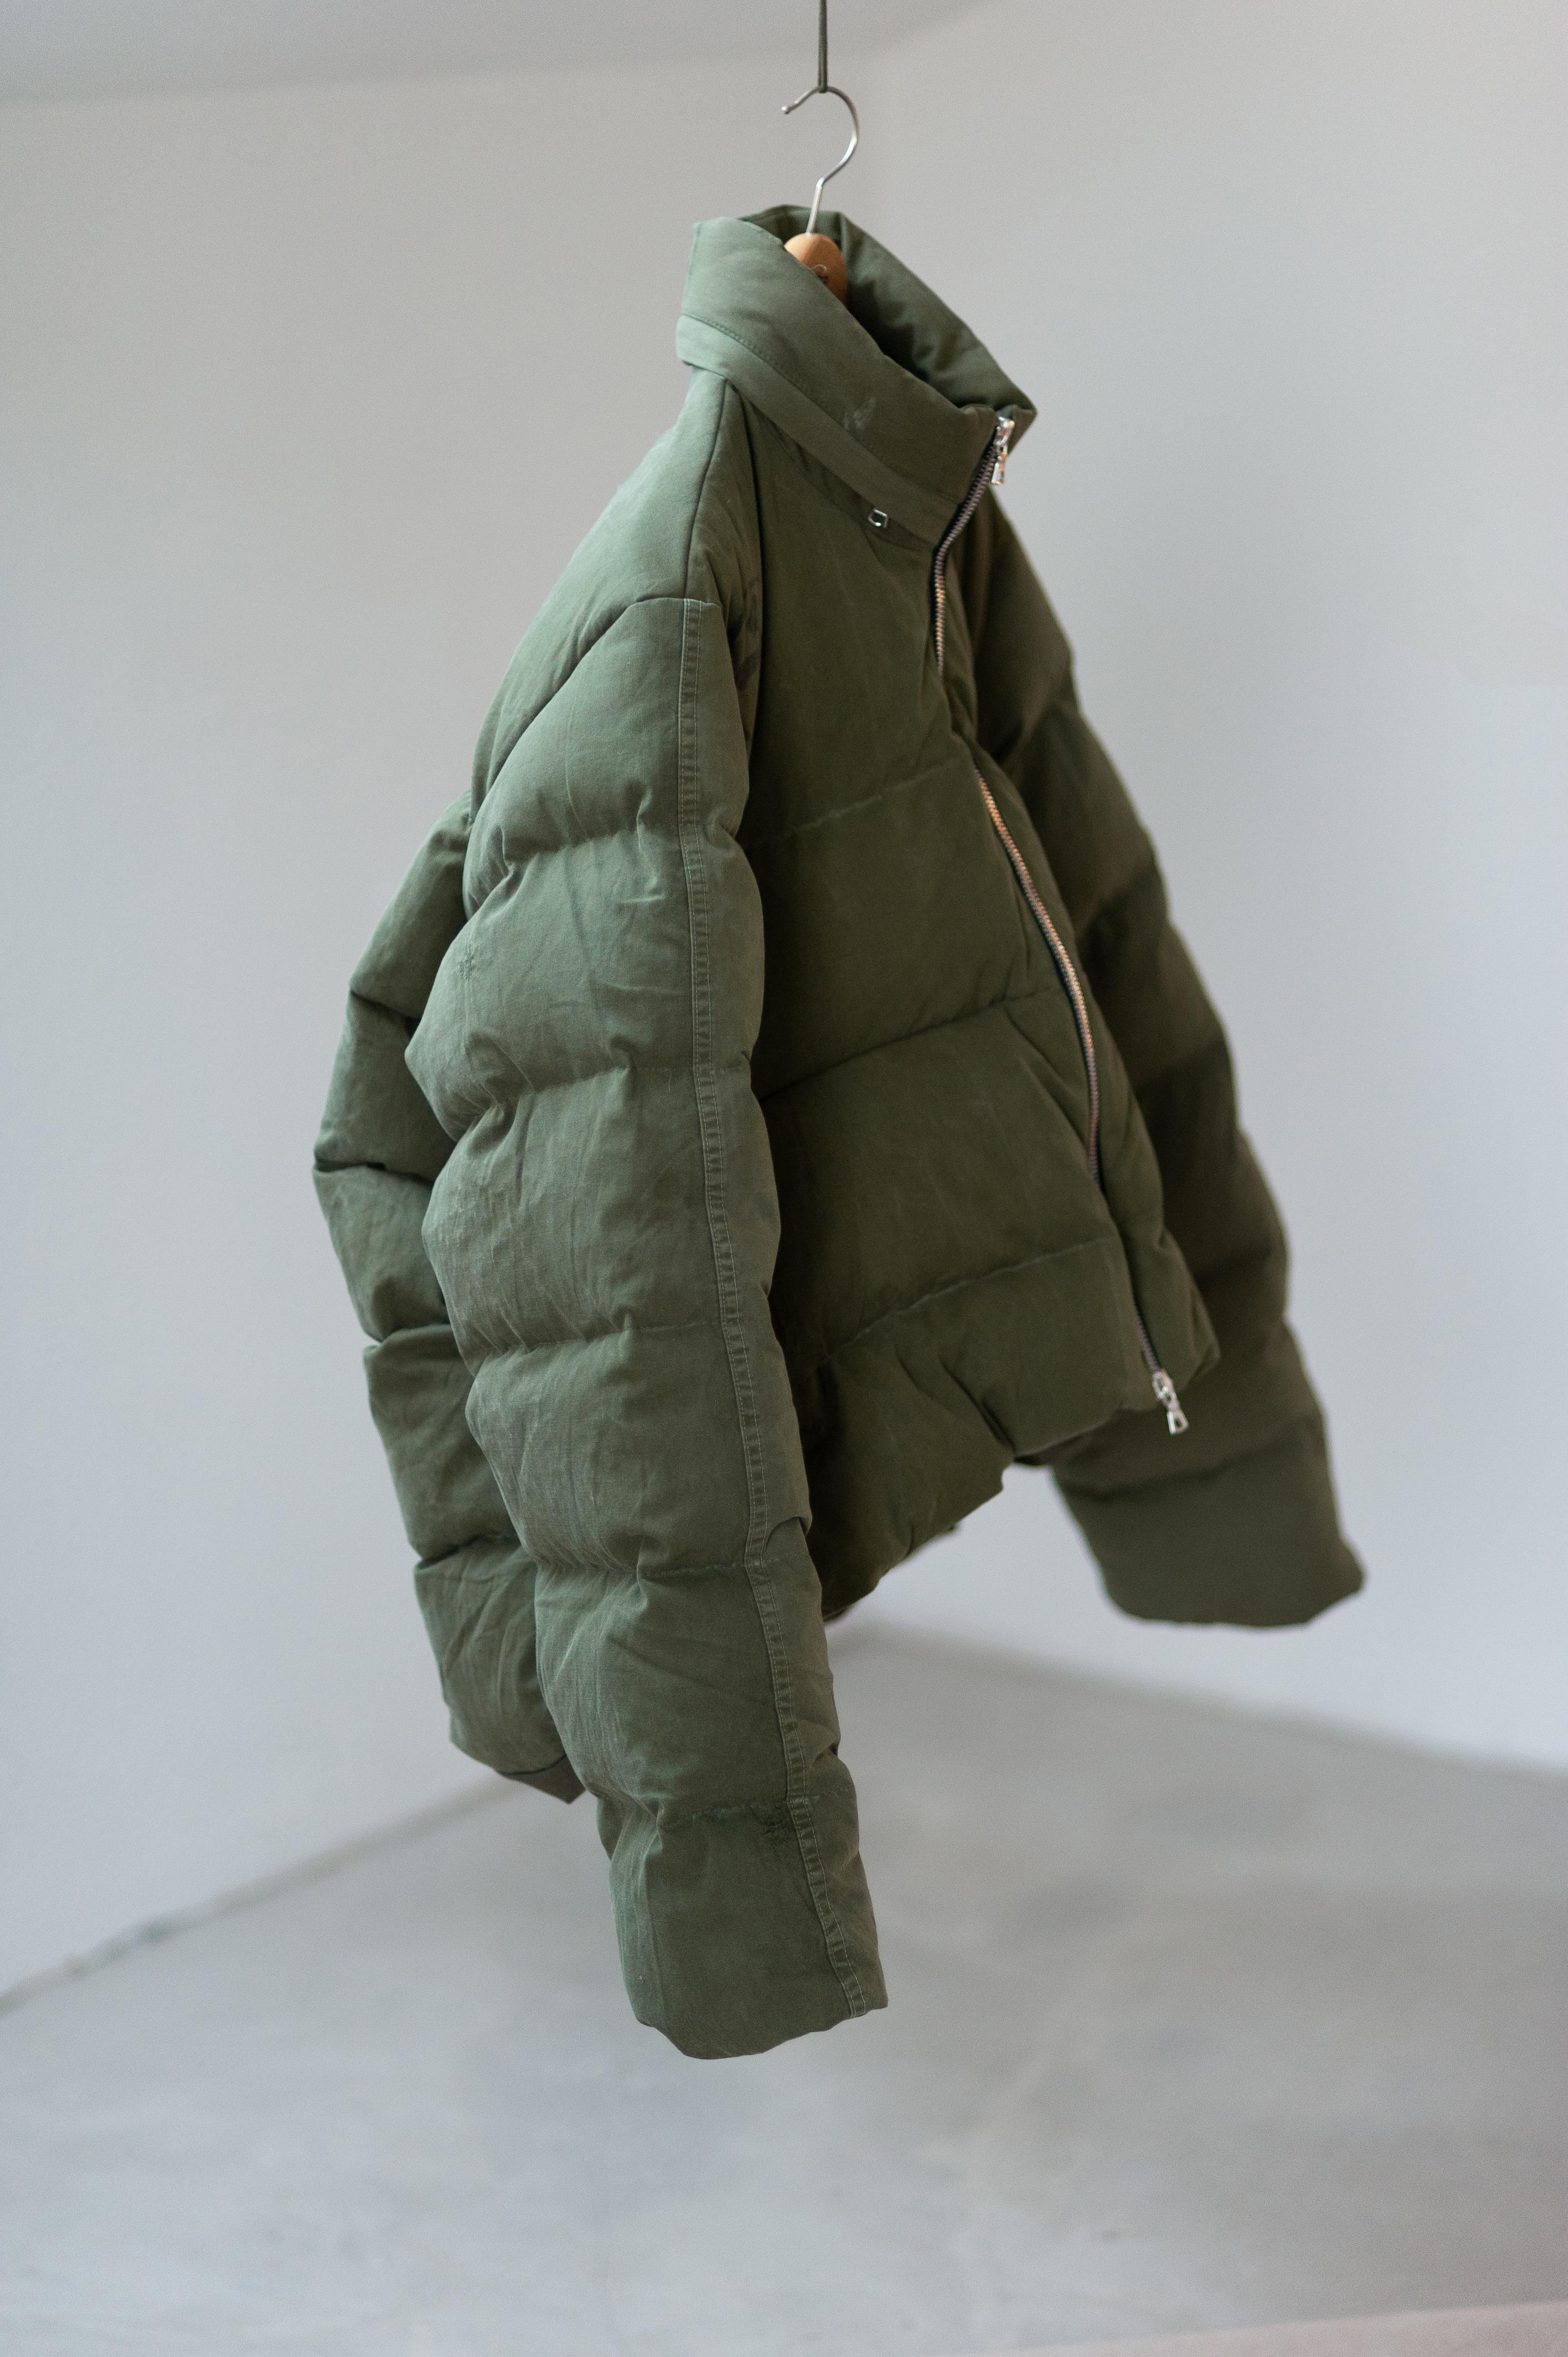 HAND MADE VIETNAM TWILL RECONSTRUCTED C-SHAPE PUFFER DOWN JACKET READYMADE